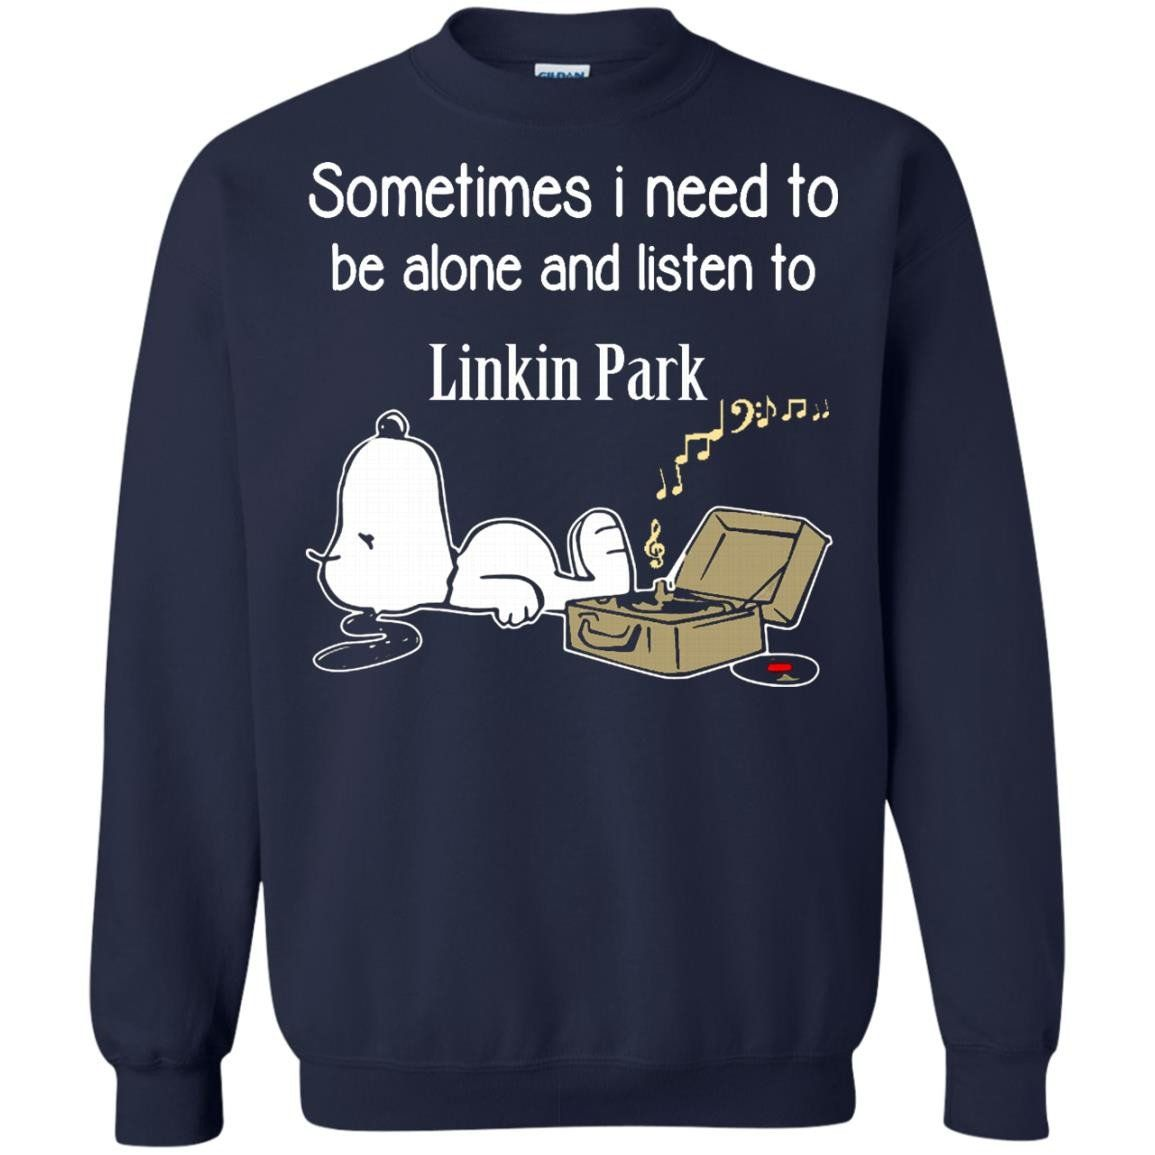 linkin park shirts sometimes need to be alone n listen to. Black Bedroom Furniture Sets. Home Design Ideas